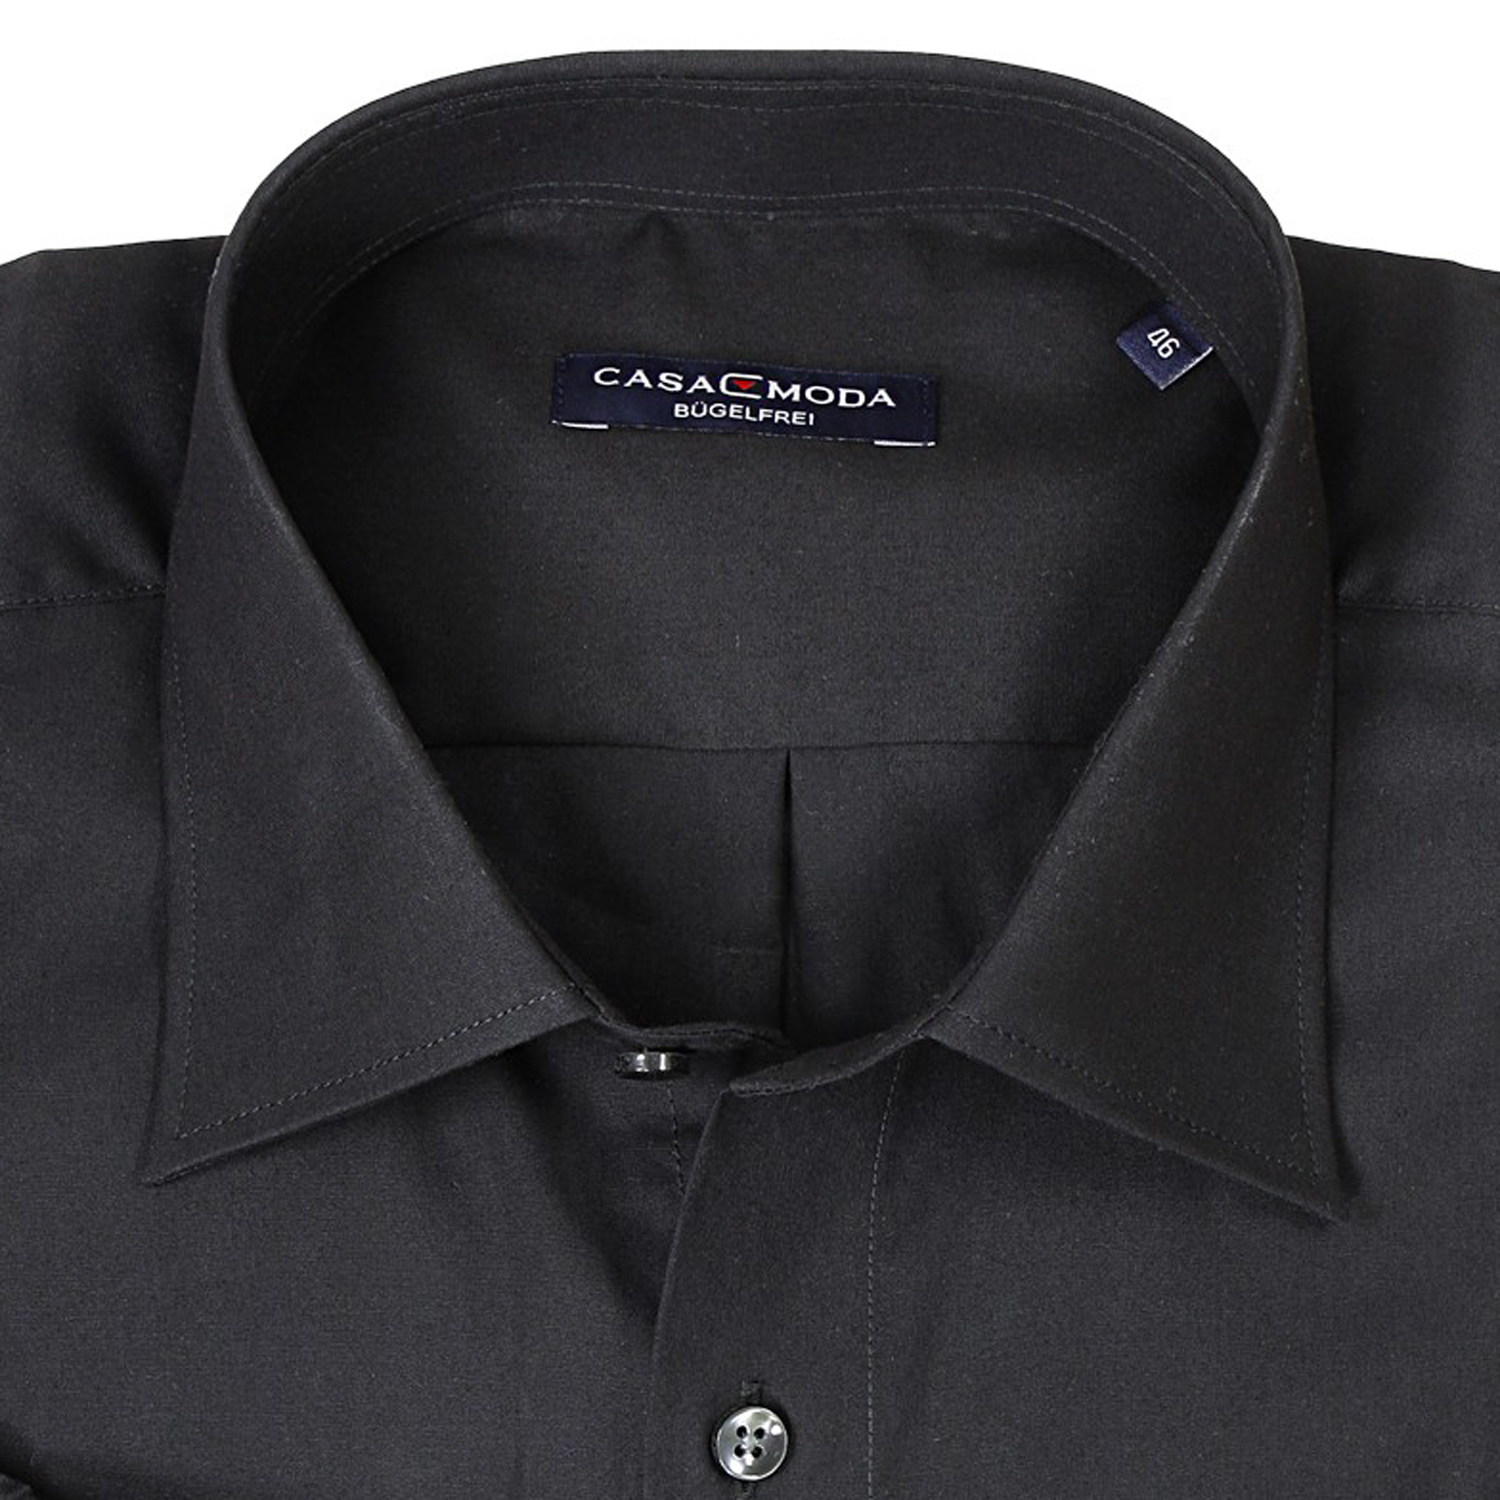 Detail Image to Black shirt by Casamoda in plus size up to 7XL